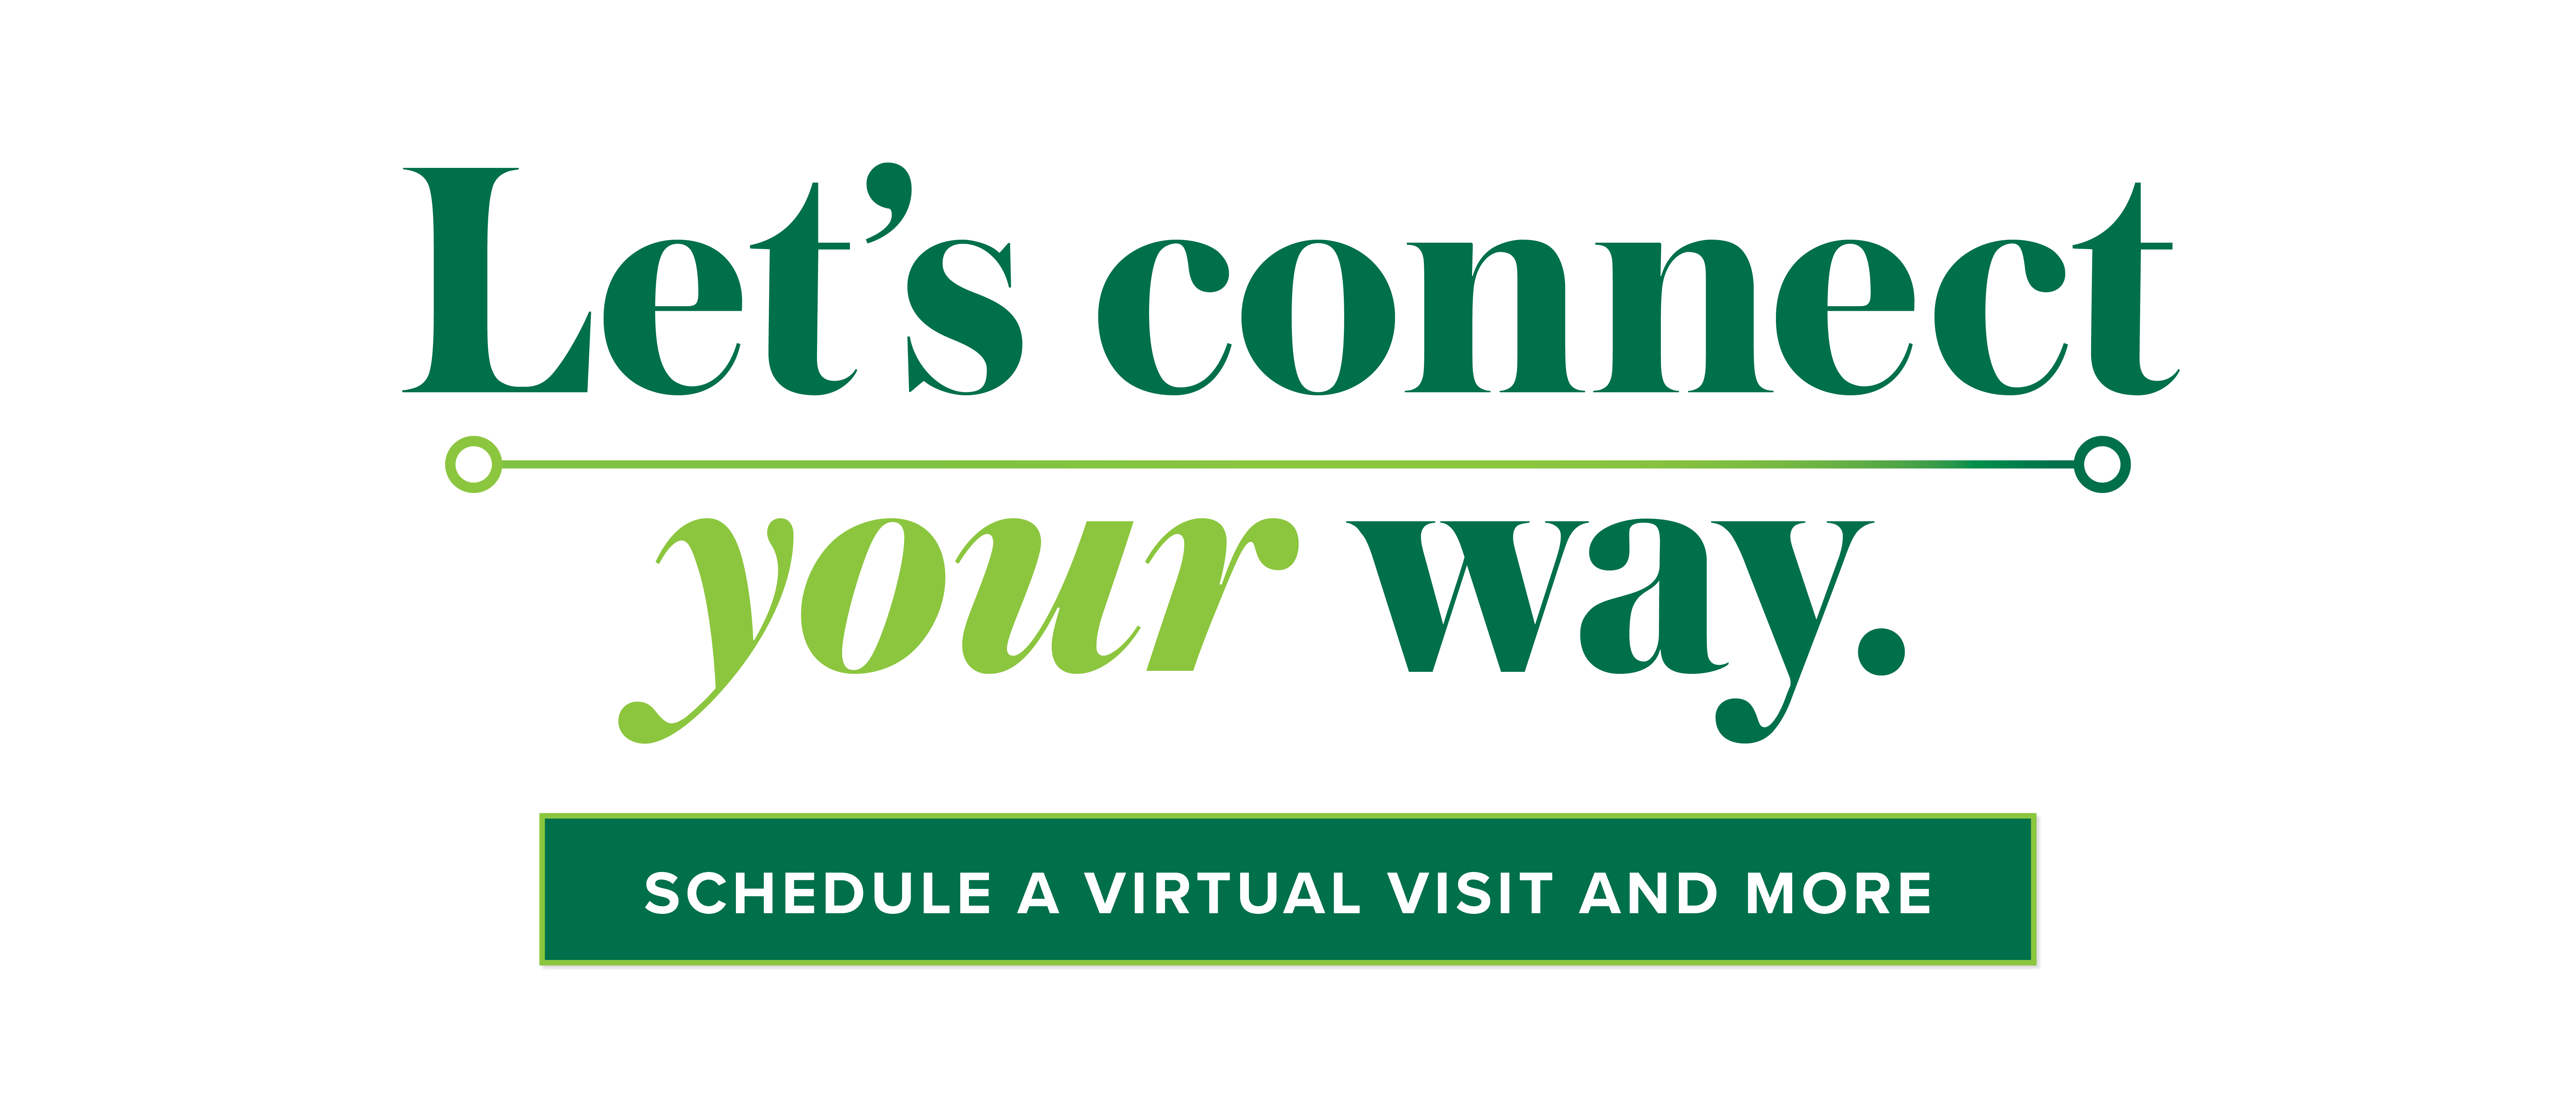 Let's connect your way. Schedule a virtual visit and more.